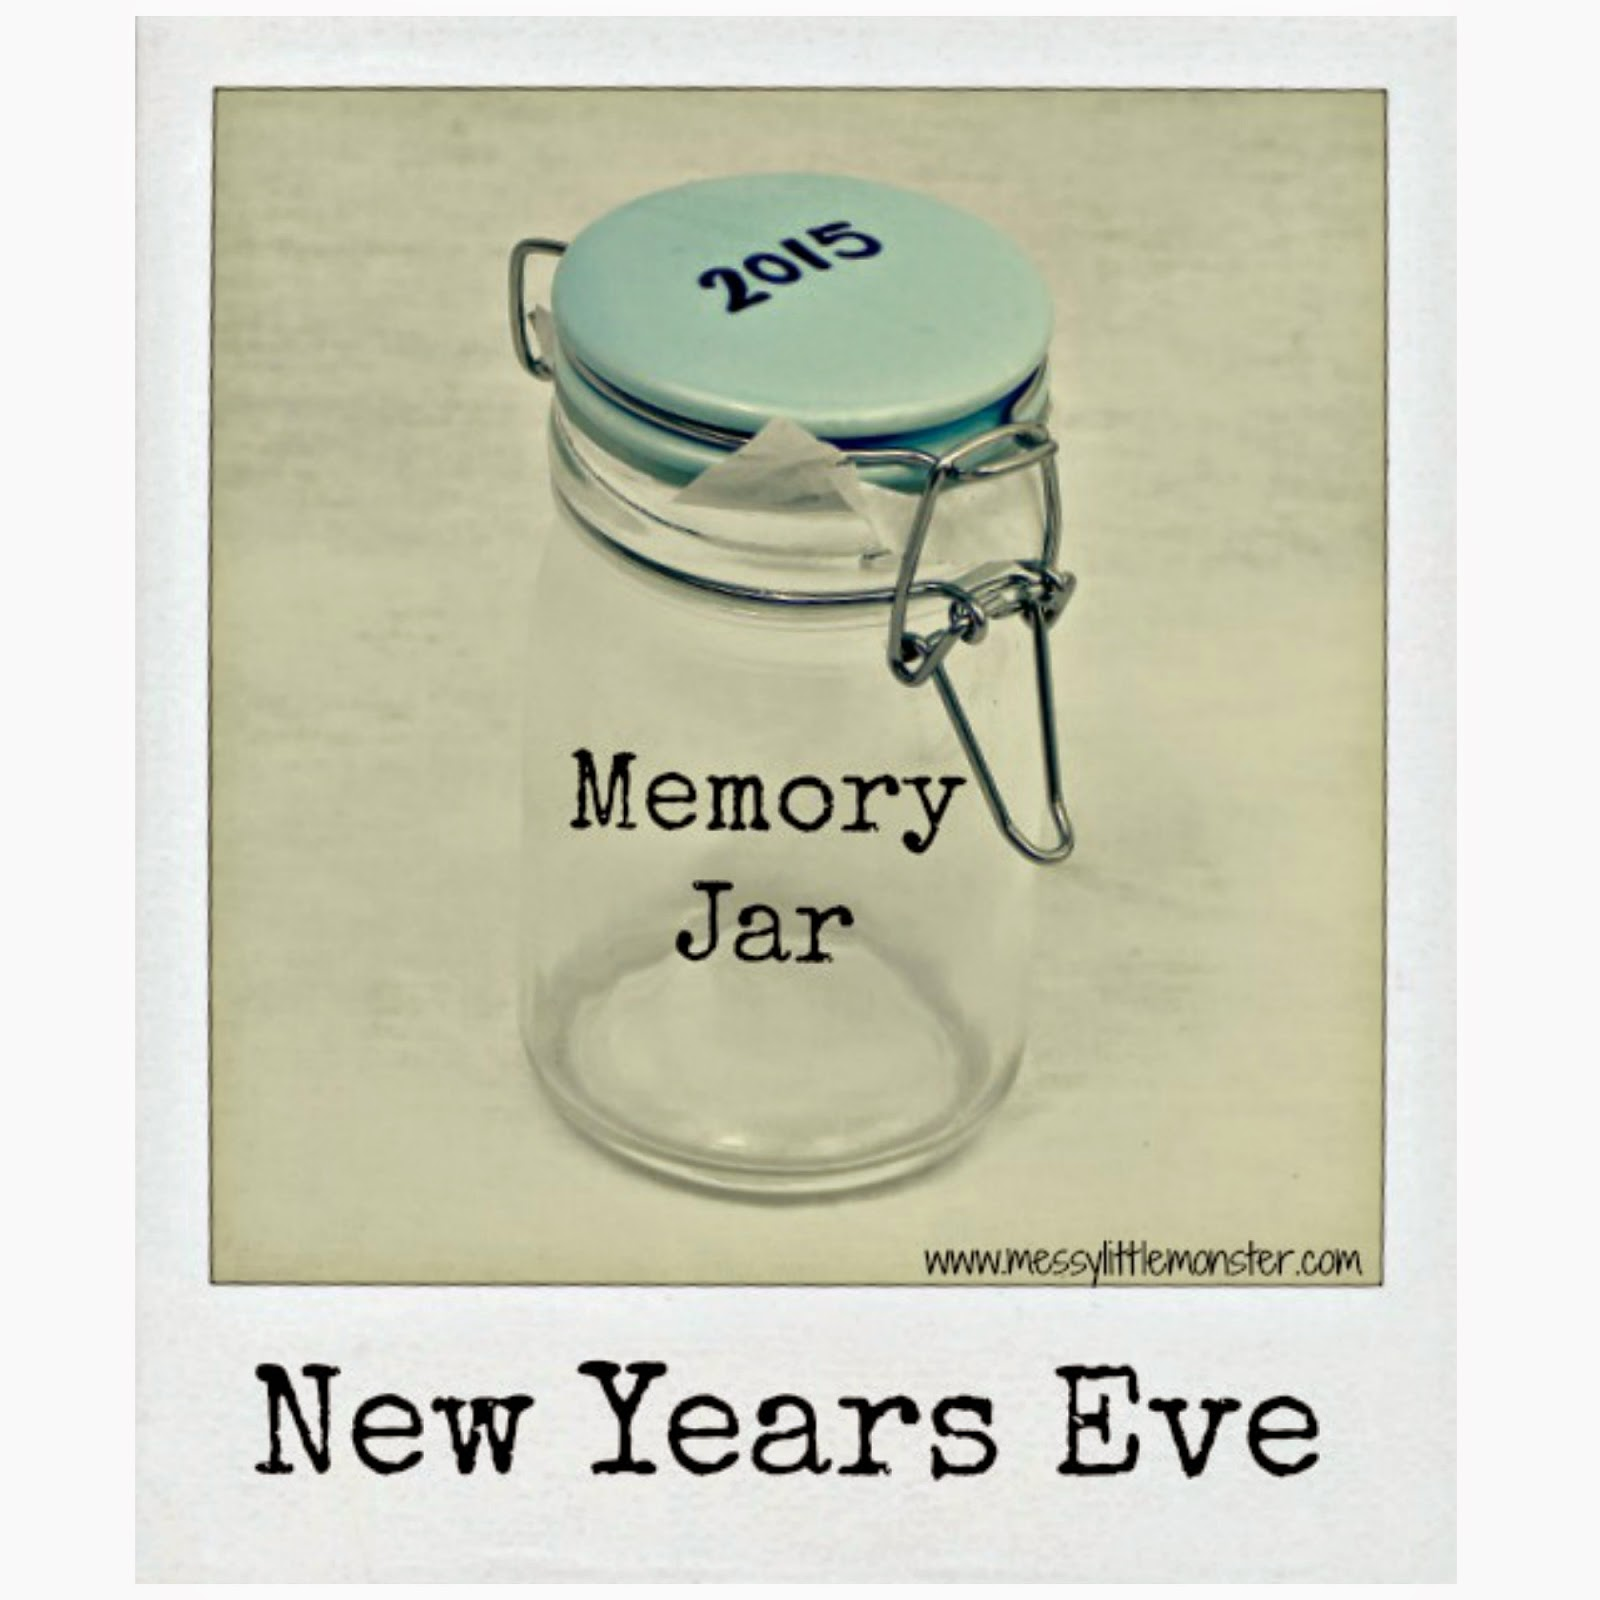 Make a New Years Eve memory jar or  time capsule and create a new family tradition. This keepsake is lots of fun to look back on.